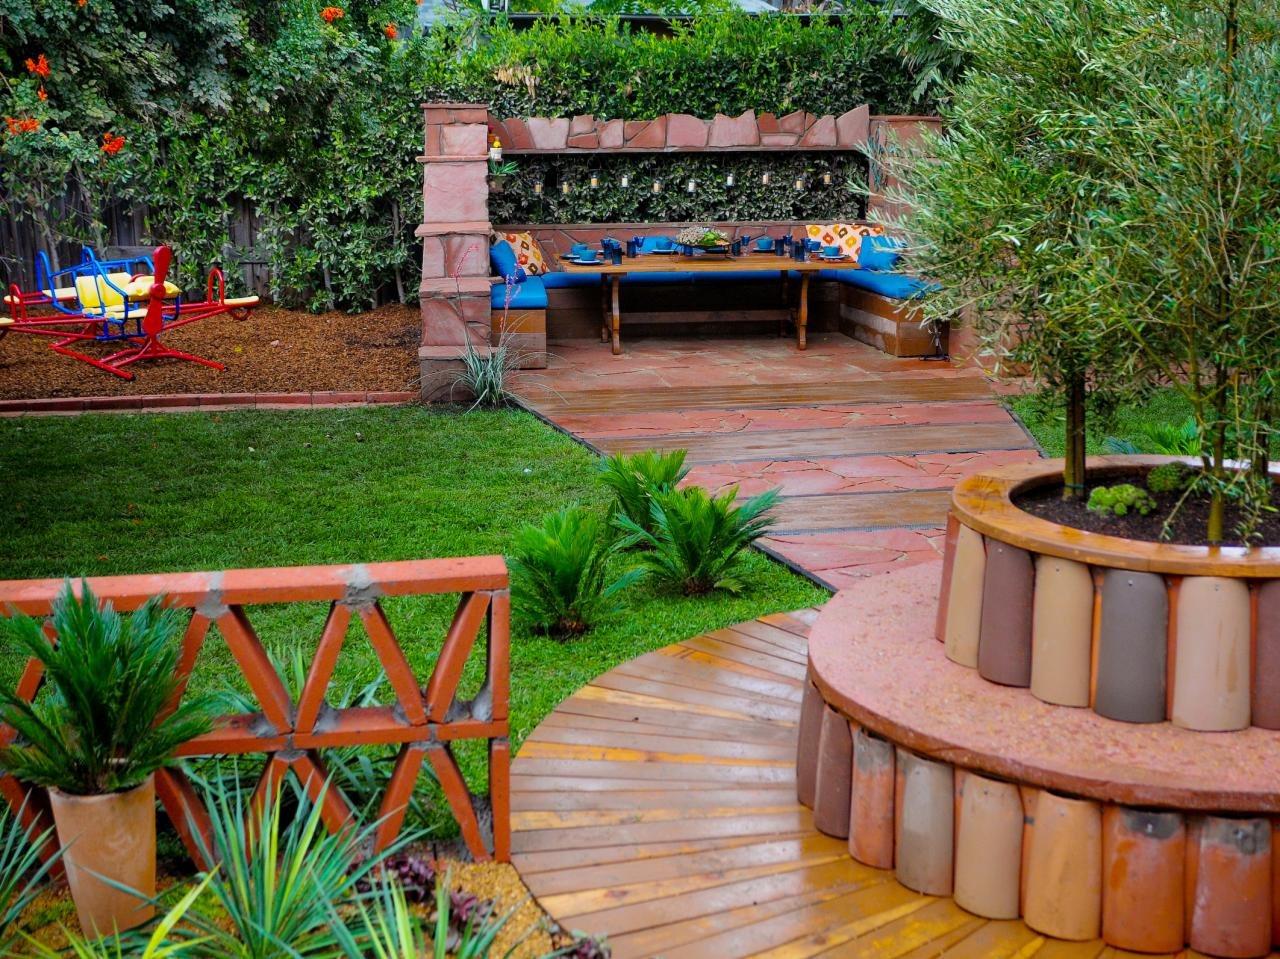 Patio ideas outdoor spaces patio ideas decks for Outside garden design